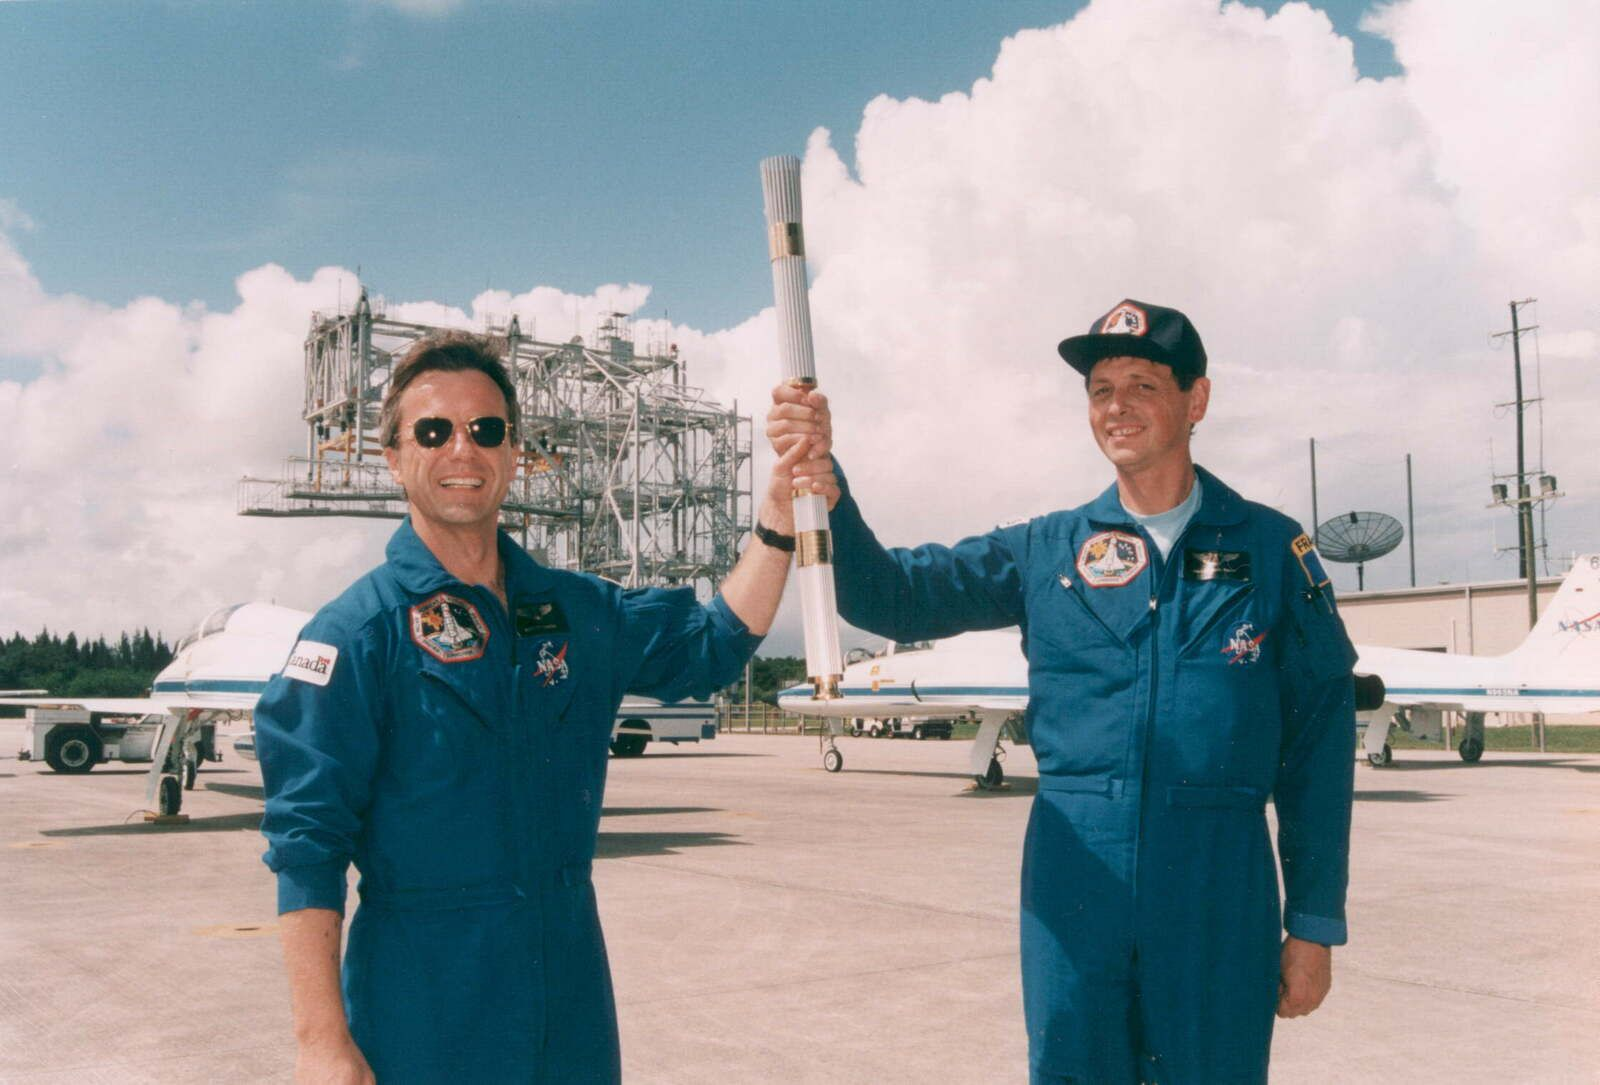 STS-78 - Colombia - 1996 - Flamme olympique - Olympic torch - Equipage - Crew - NASA - Jeux olympiques Atlanta - Jean-Jacques Favier - Space shuttle